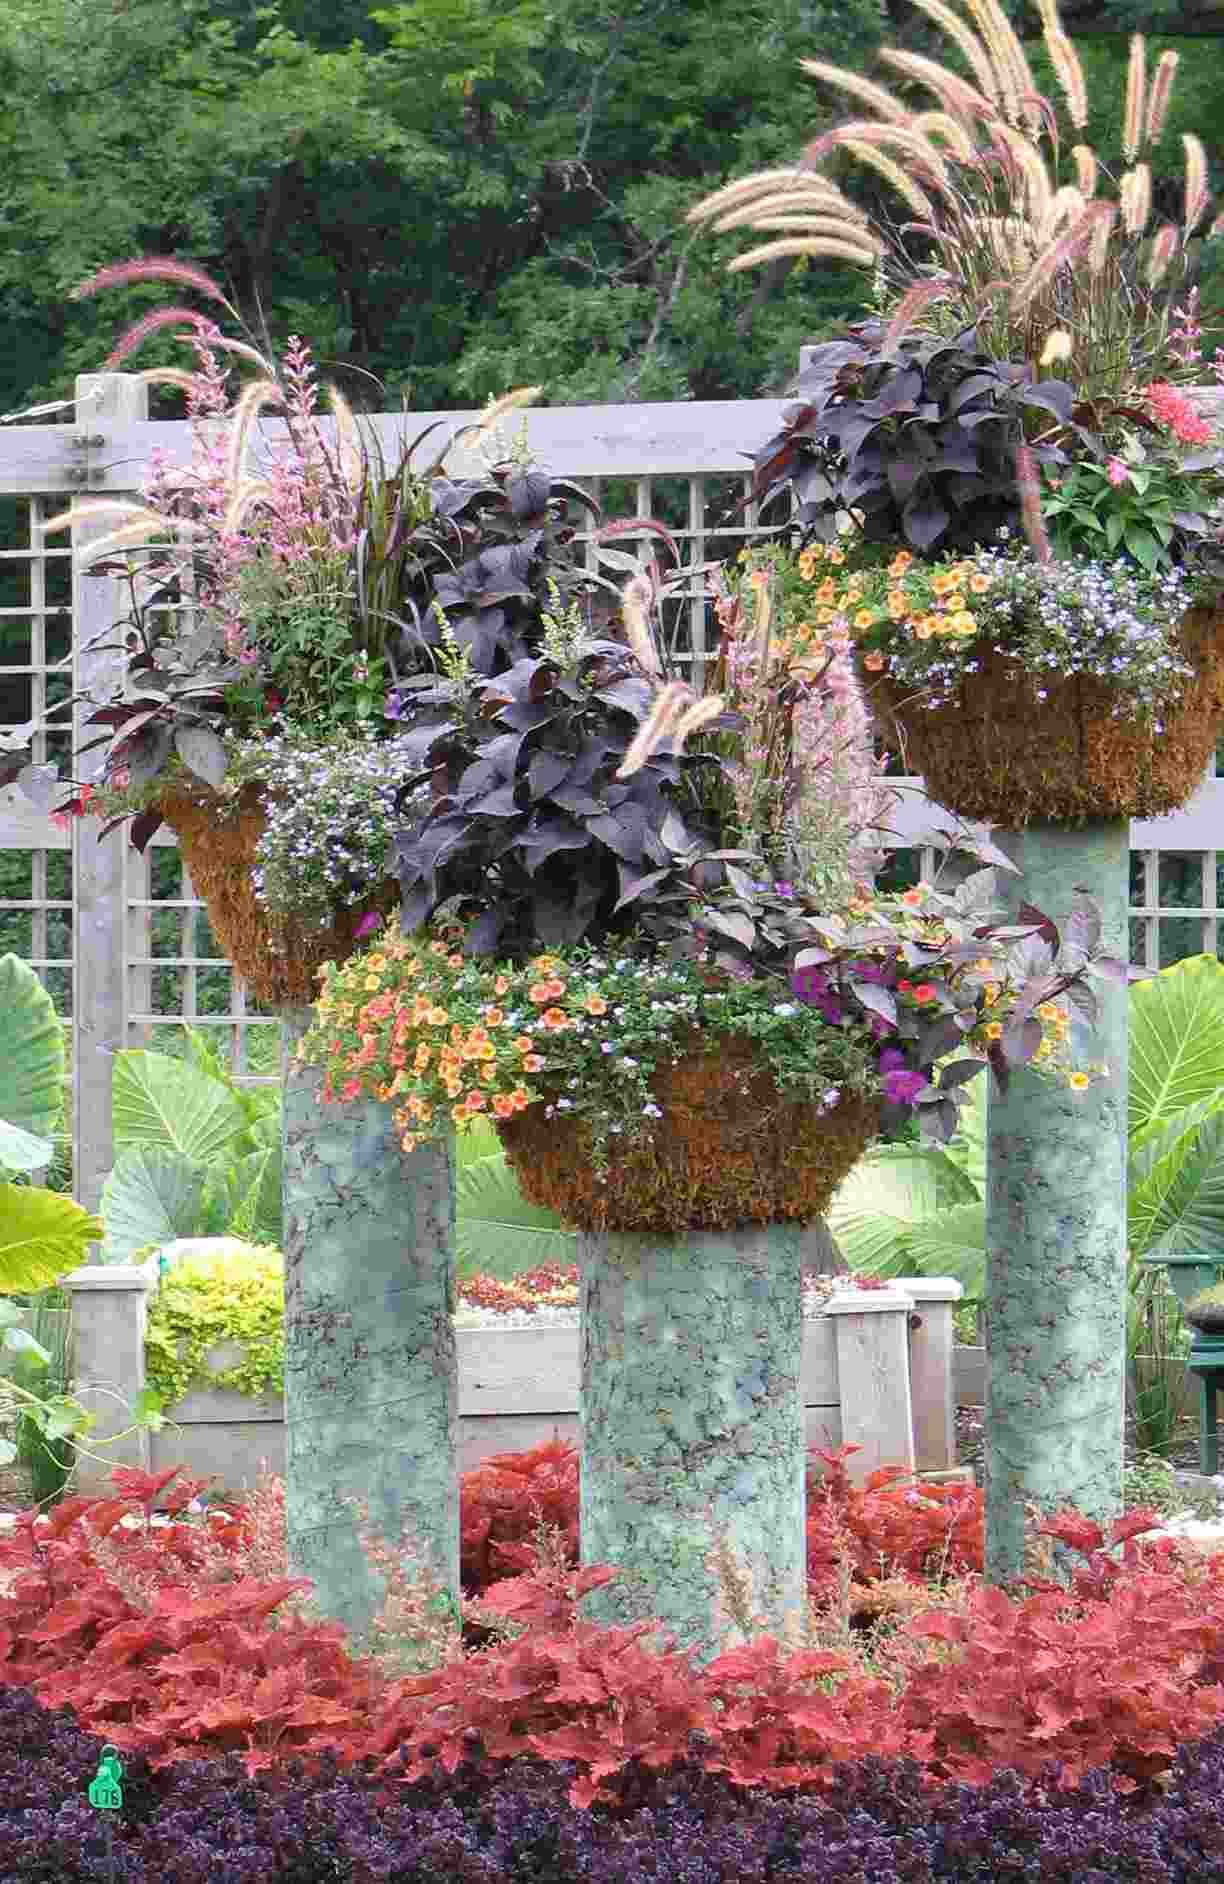 17 Best images about FlowersPlantsContainer Gardening on